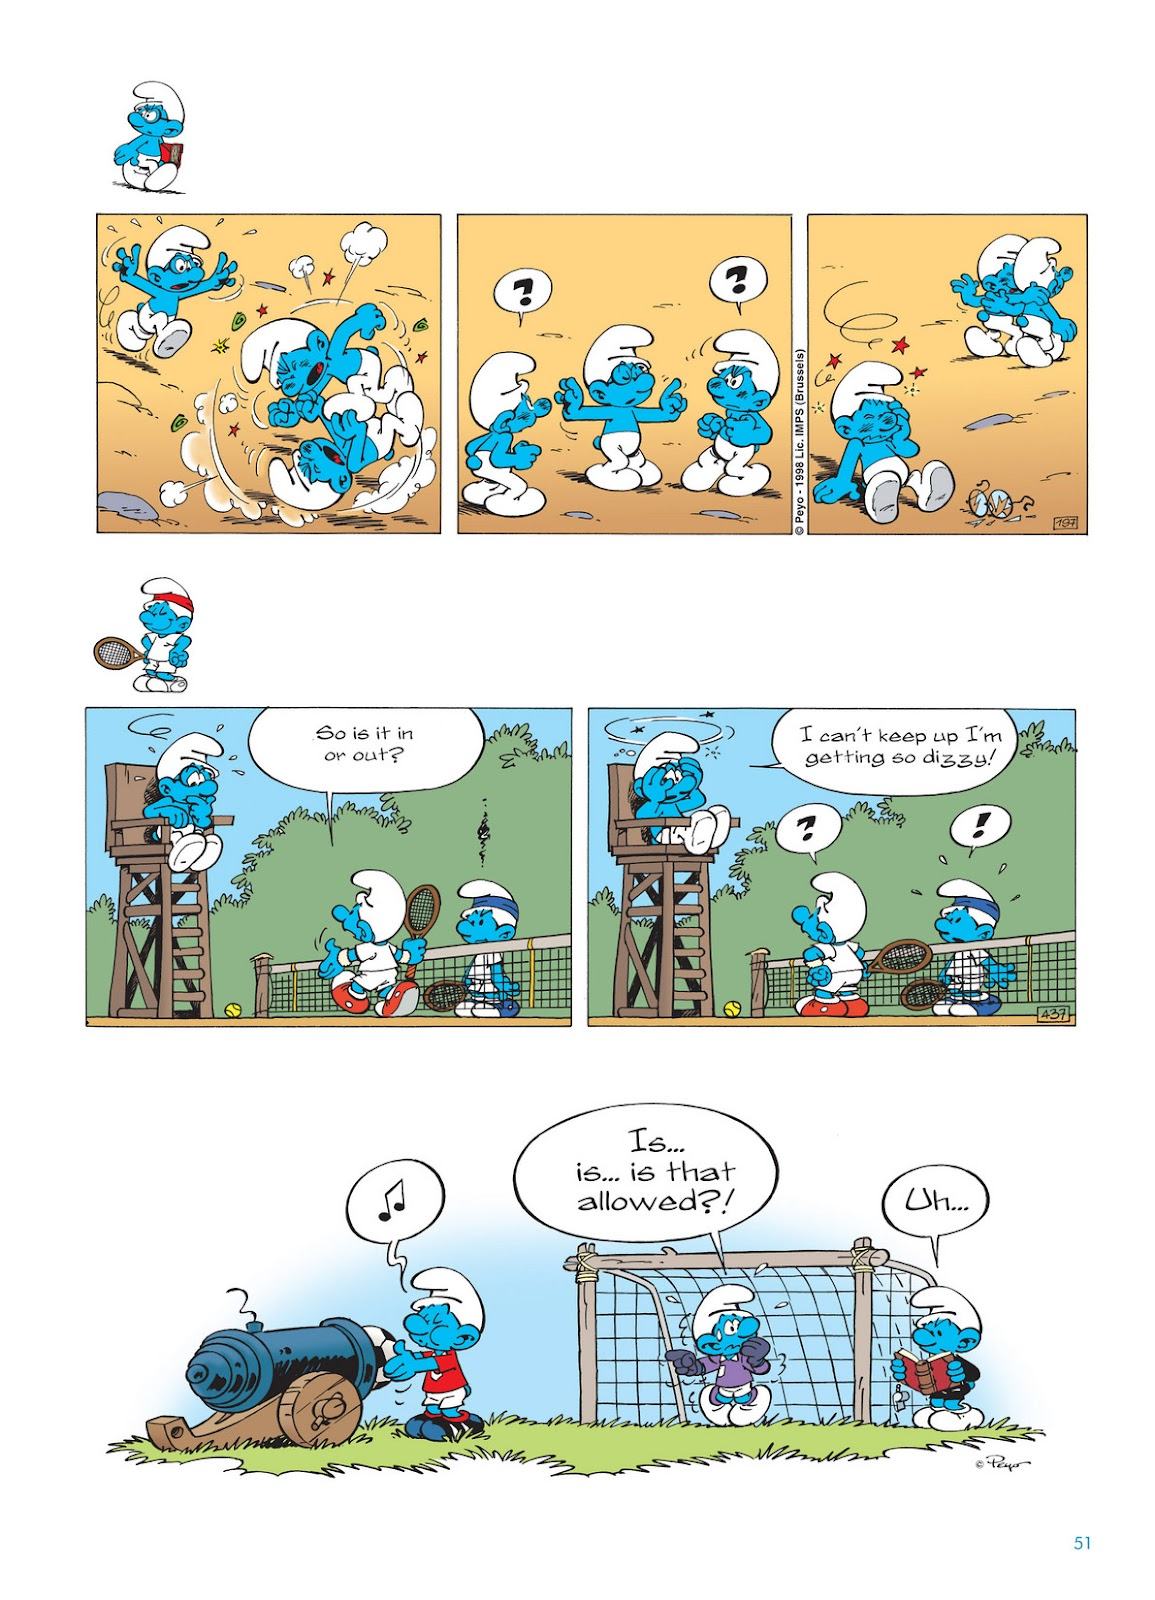 Read online The Smurfs comic -  Issue #11 - 51